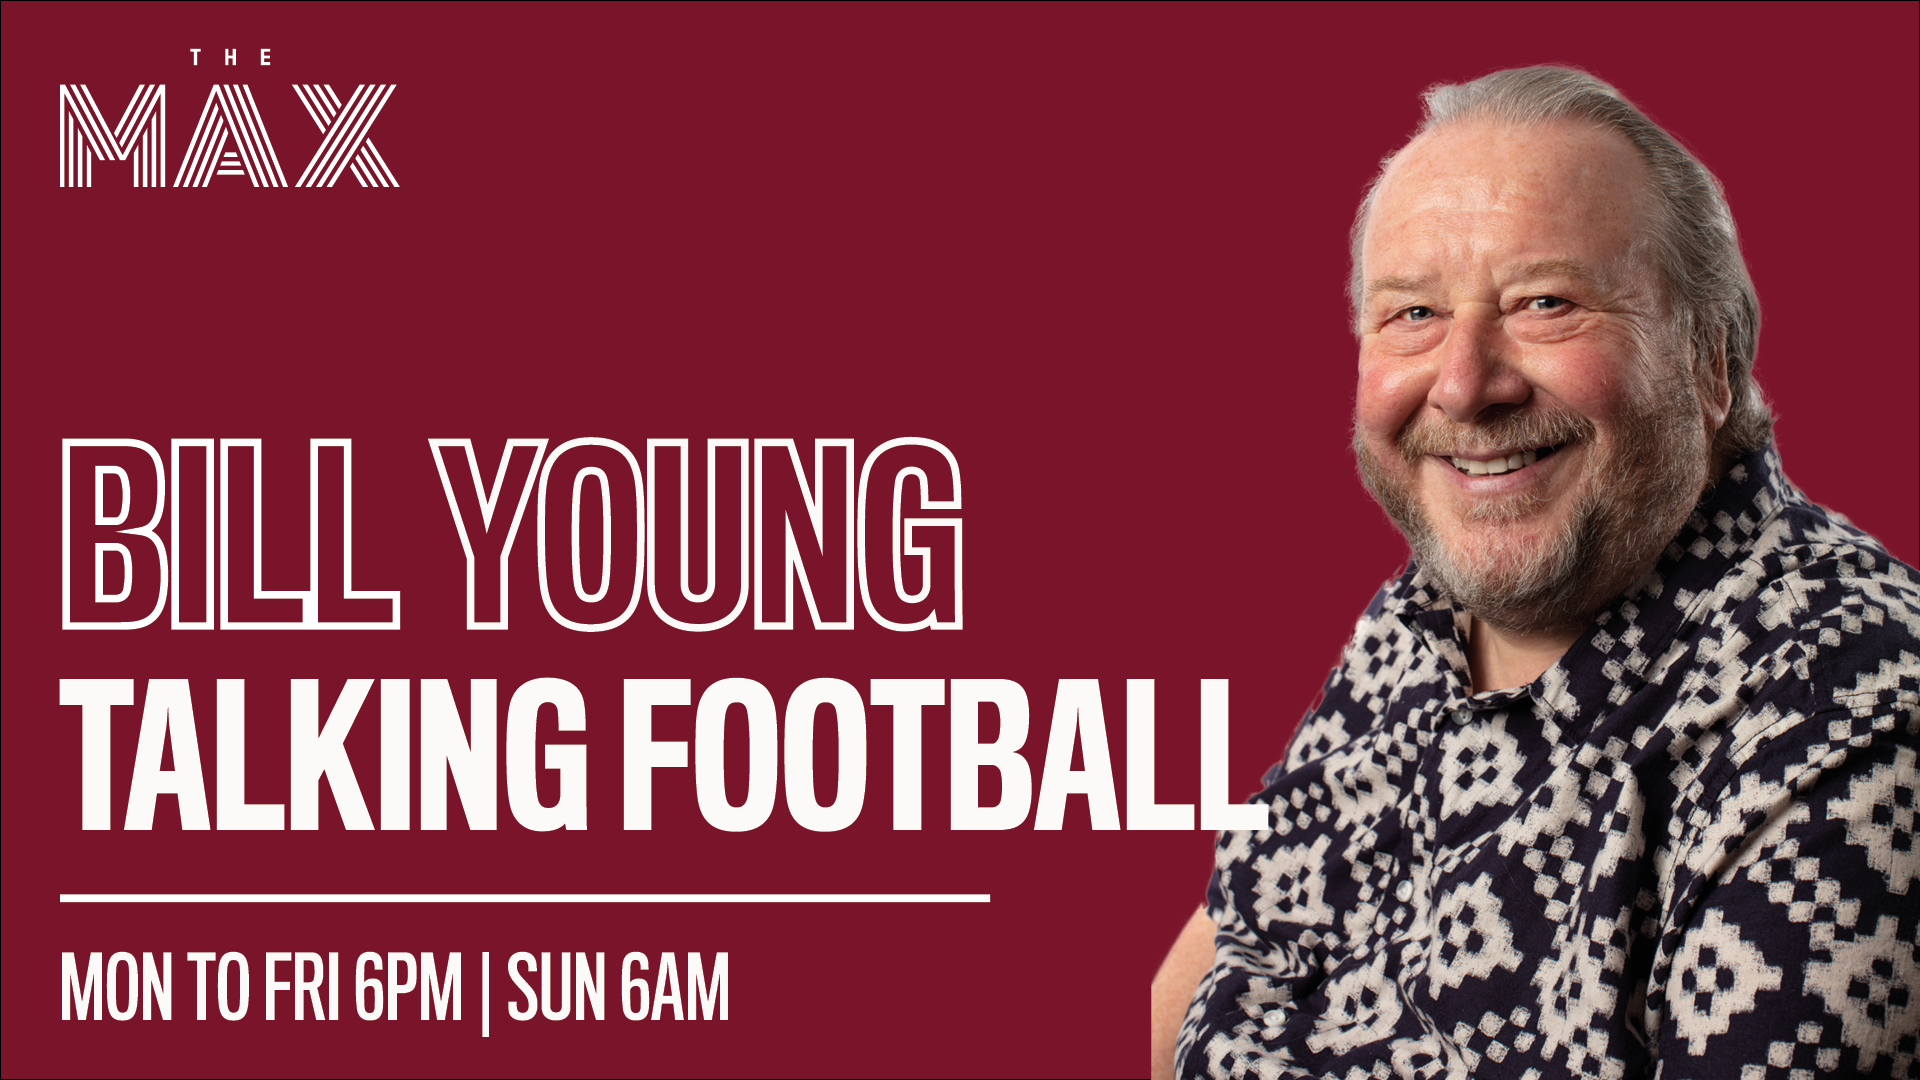 Talking Football with Bill Young Friday 21st May